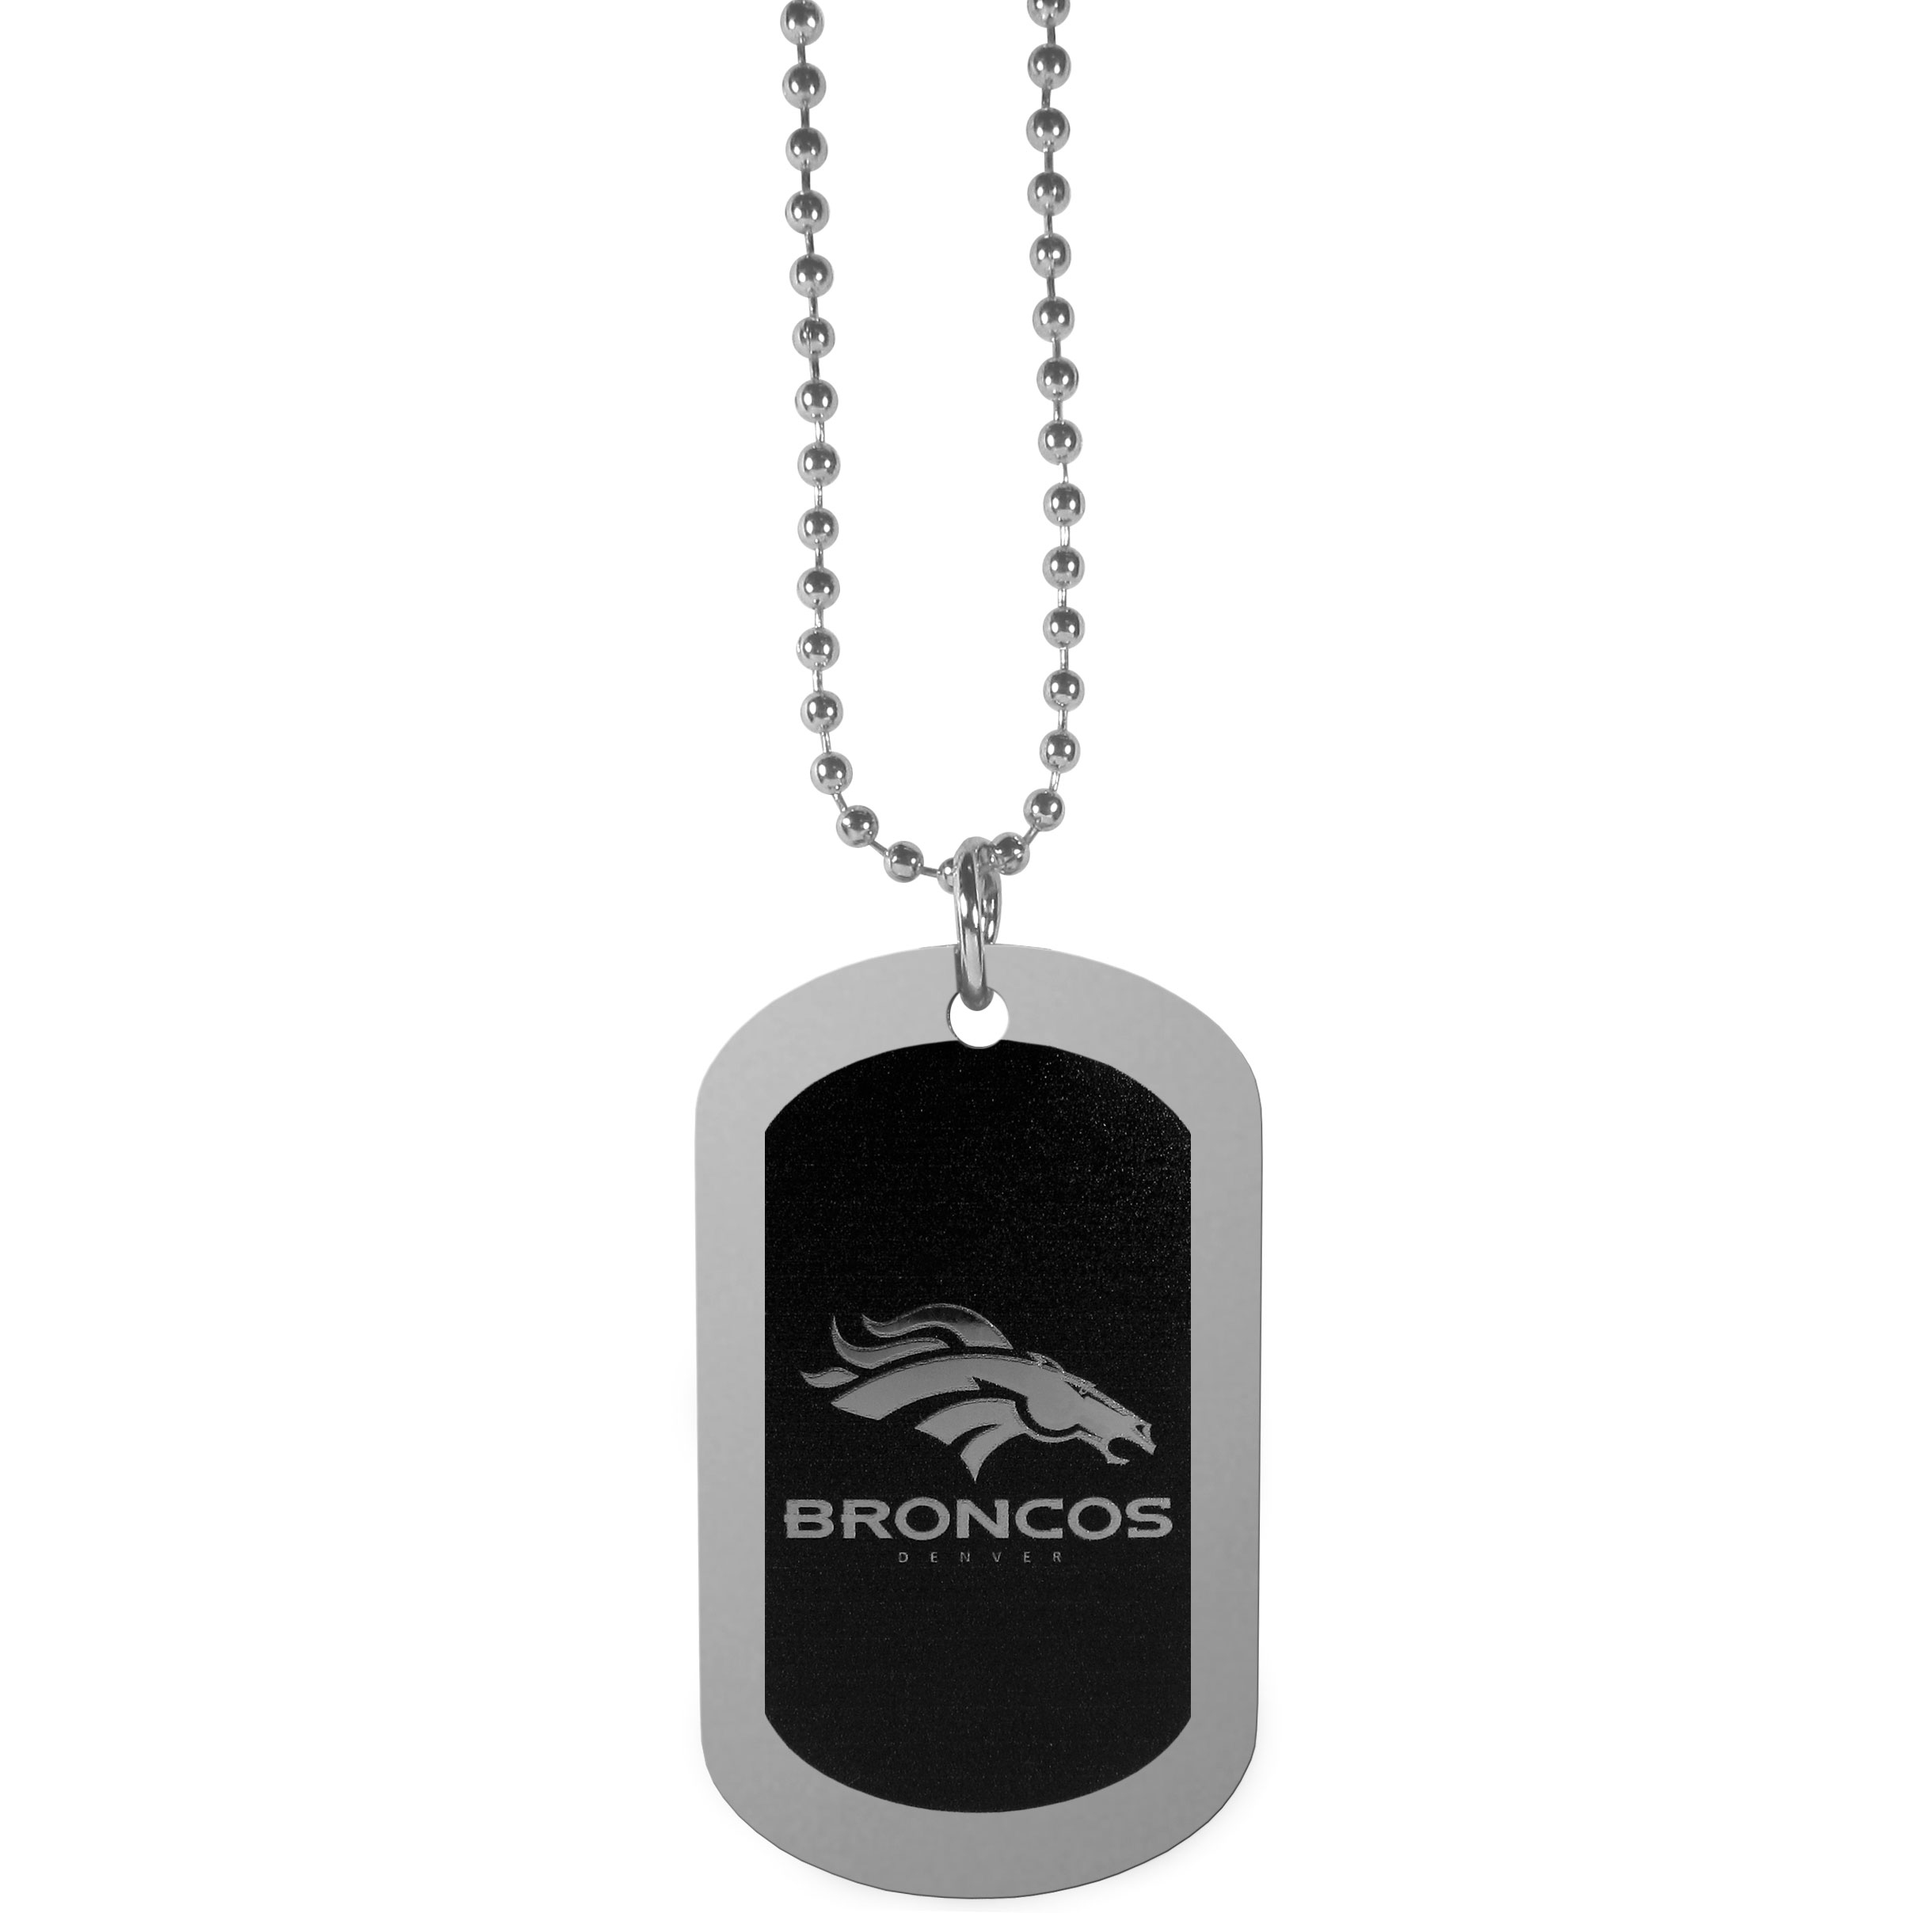 Denver Broncos Chrome Tag Necklace - Dog tag necklaces are a fashion statement that is here to stay. The sporty version of the classic tag features a black printed over a high polish tag to create a bold and sporty look. The tag comes on a 26 inch ball chain with a ball and joint clasp. Any Denver Broncos would be proud to wear this attractive fashion accessory.